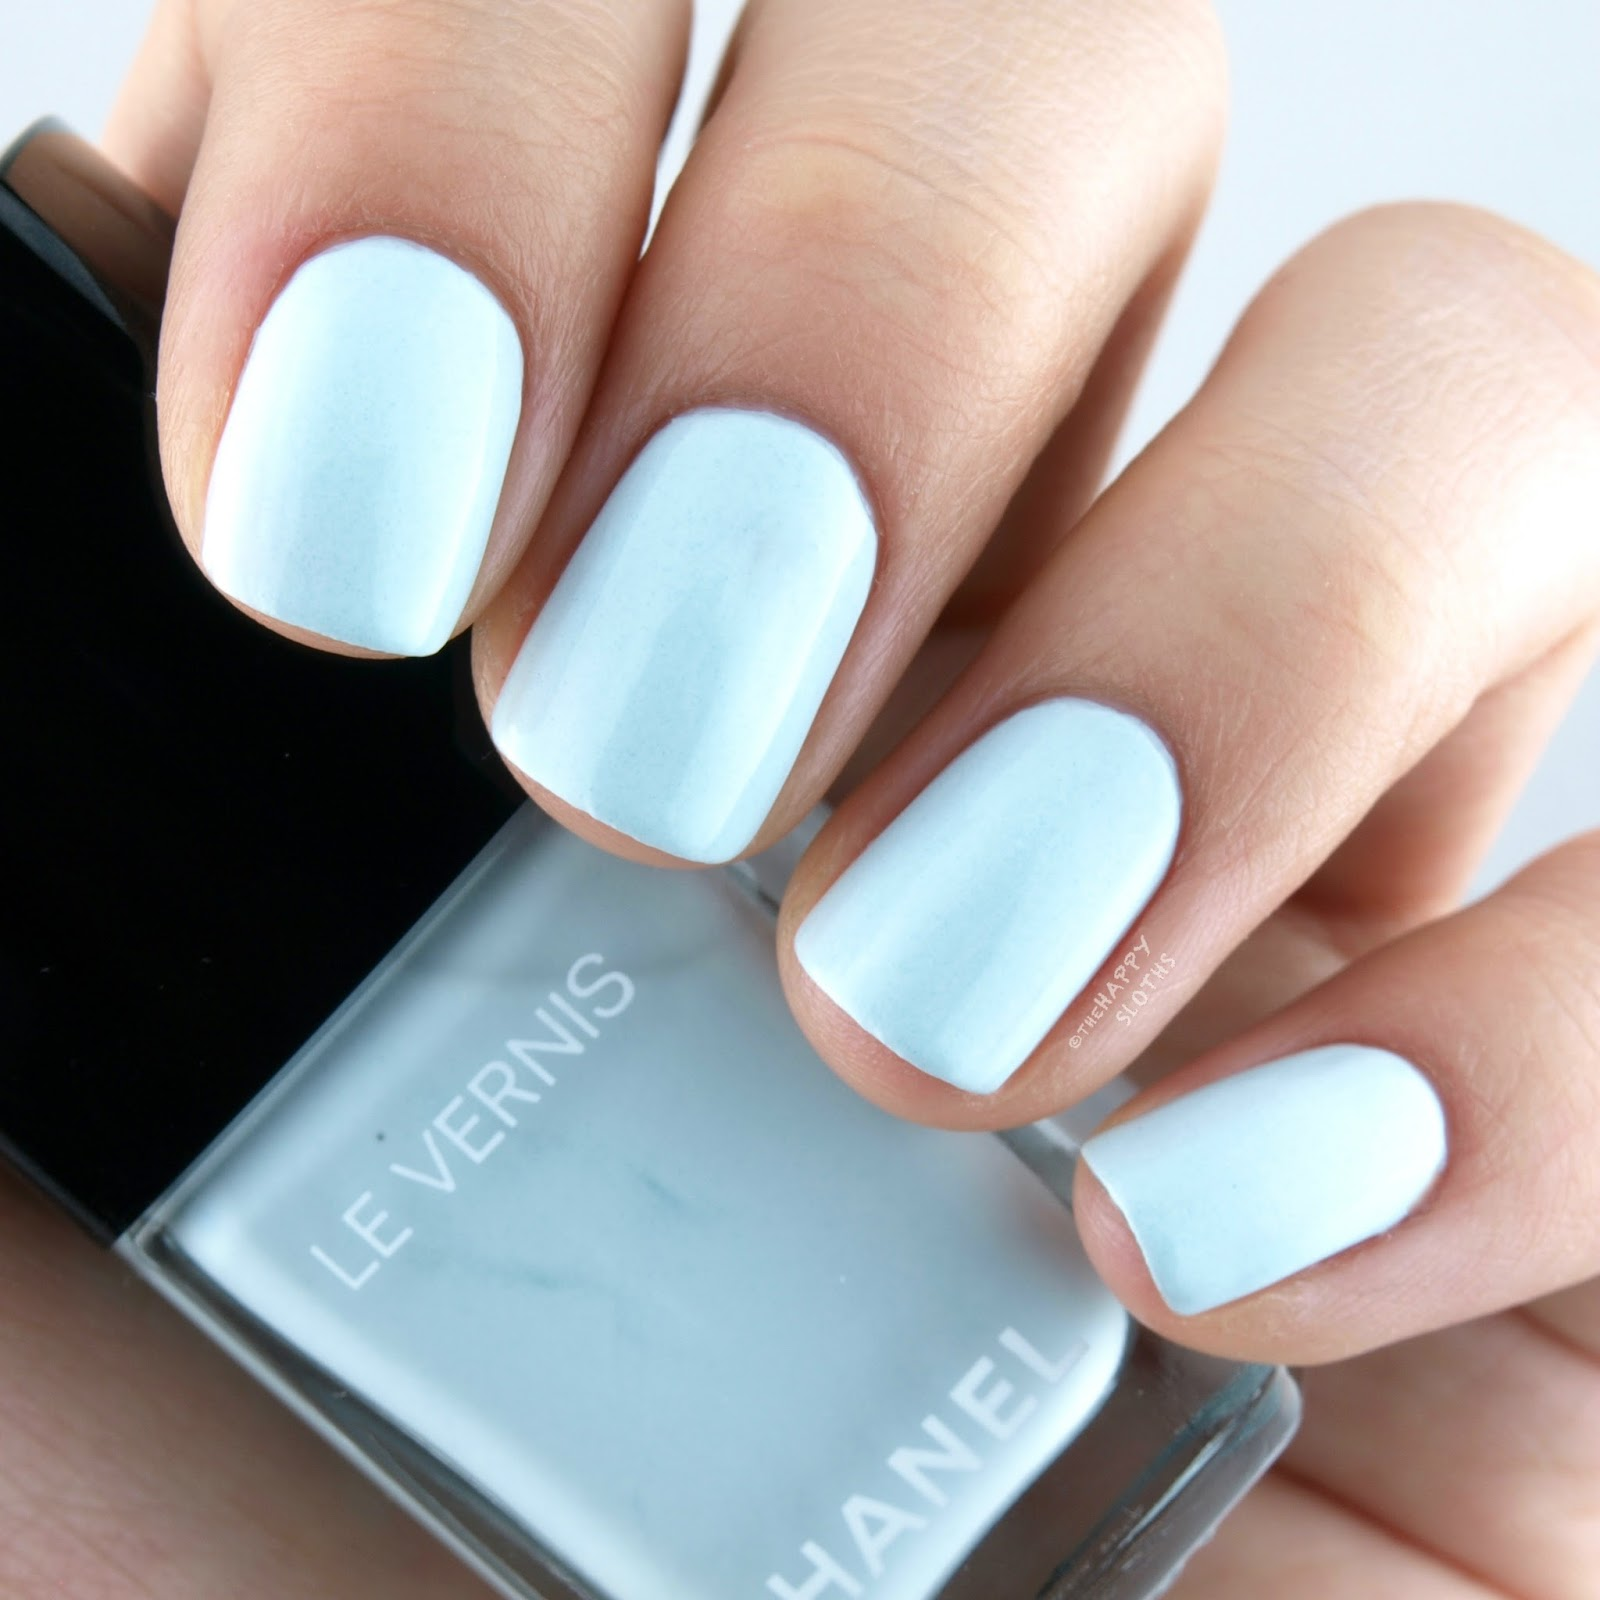 Chanel Spring 2016 Le Vernis 584 Bleu Pastel Review Swatches